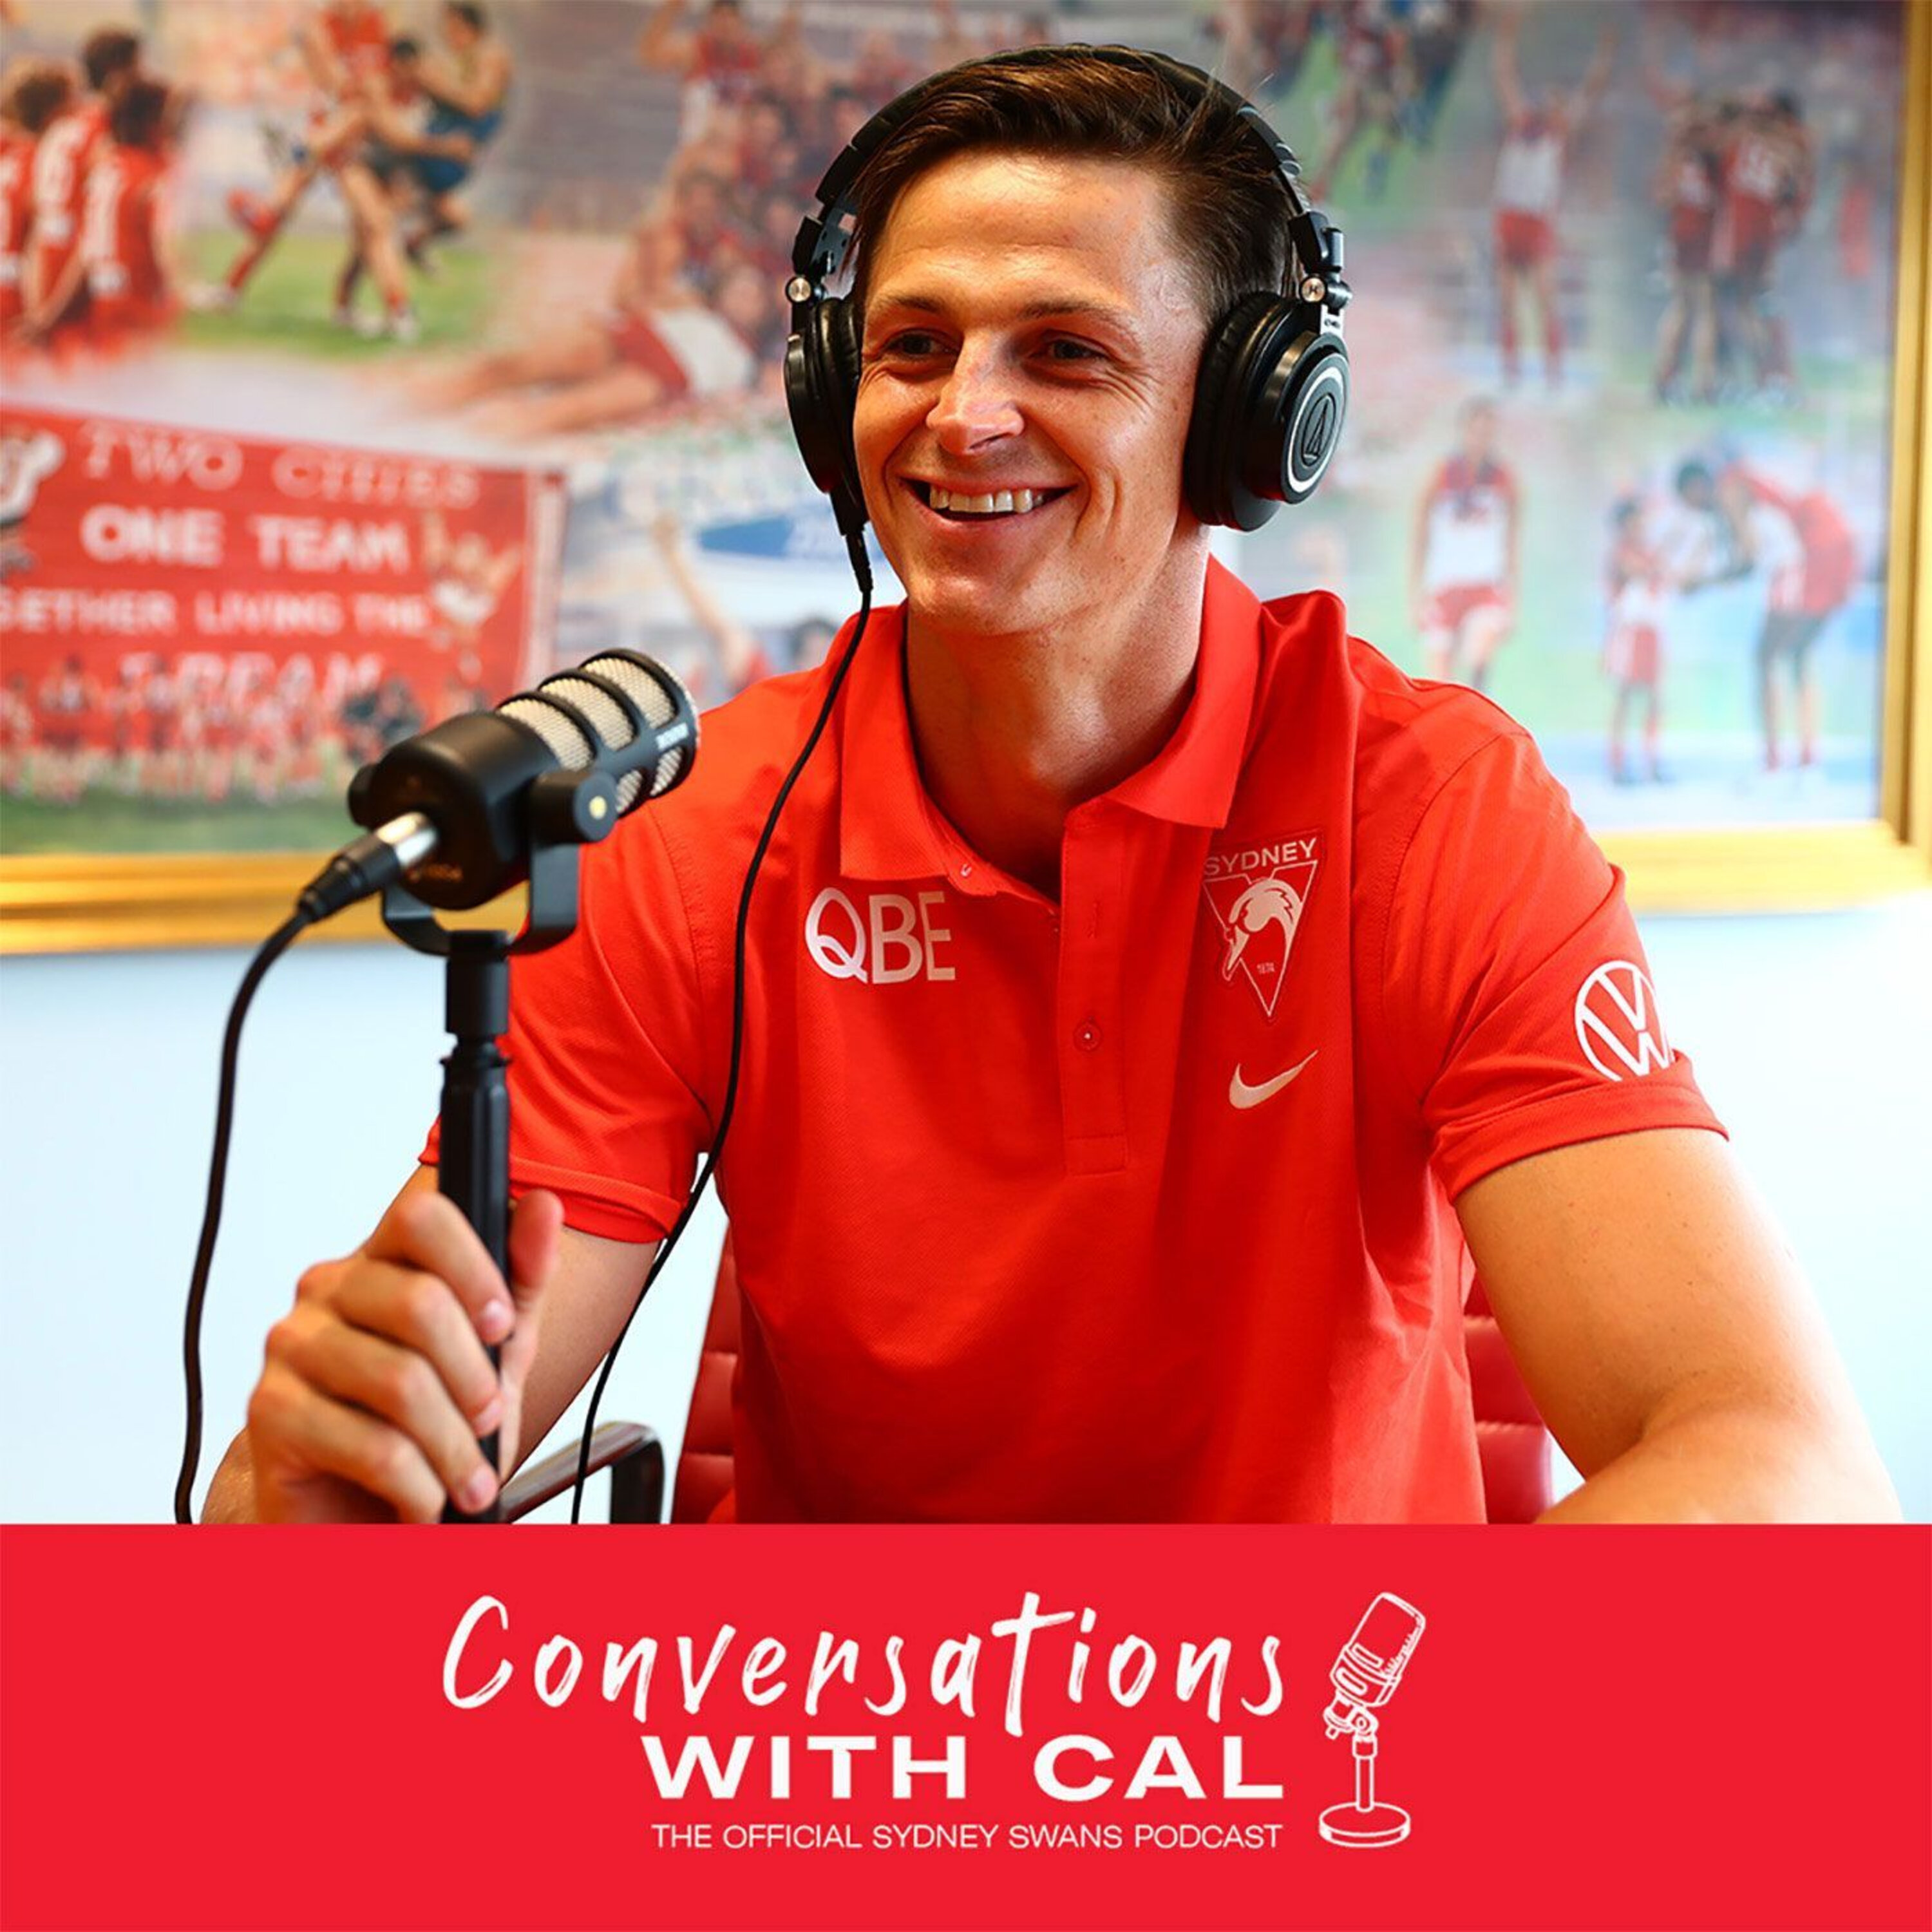 Conversations with Cal - Welcome back Haz and his new role